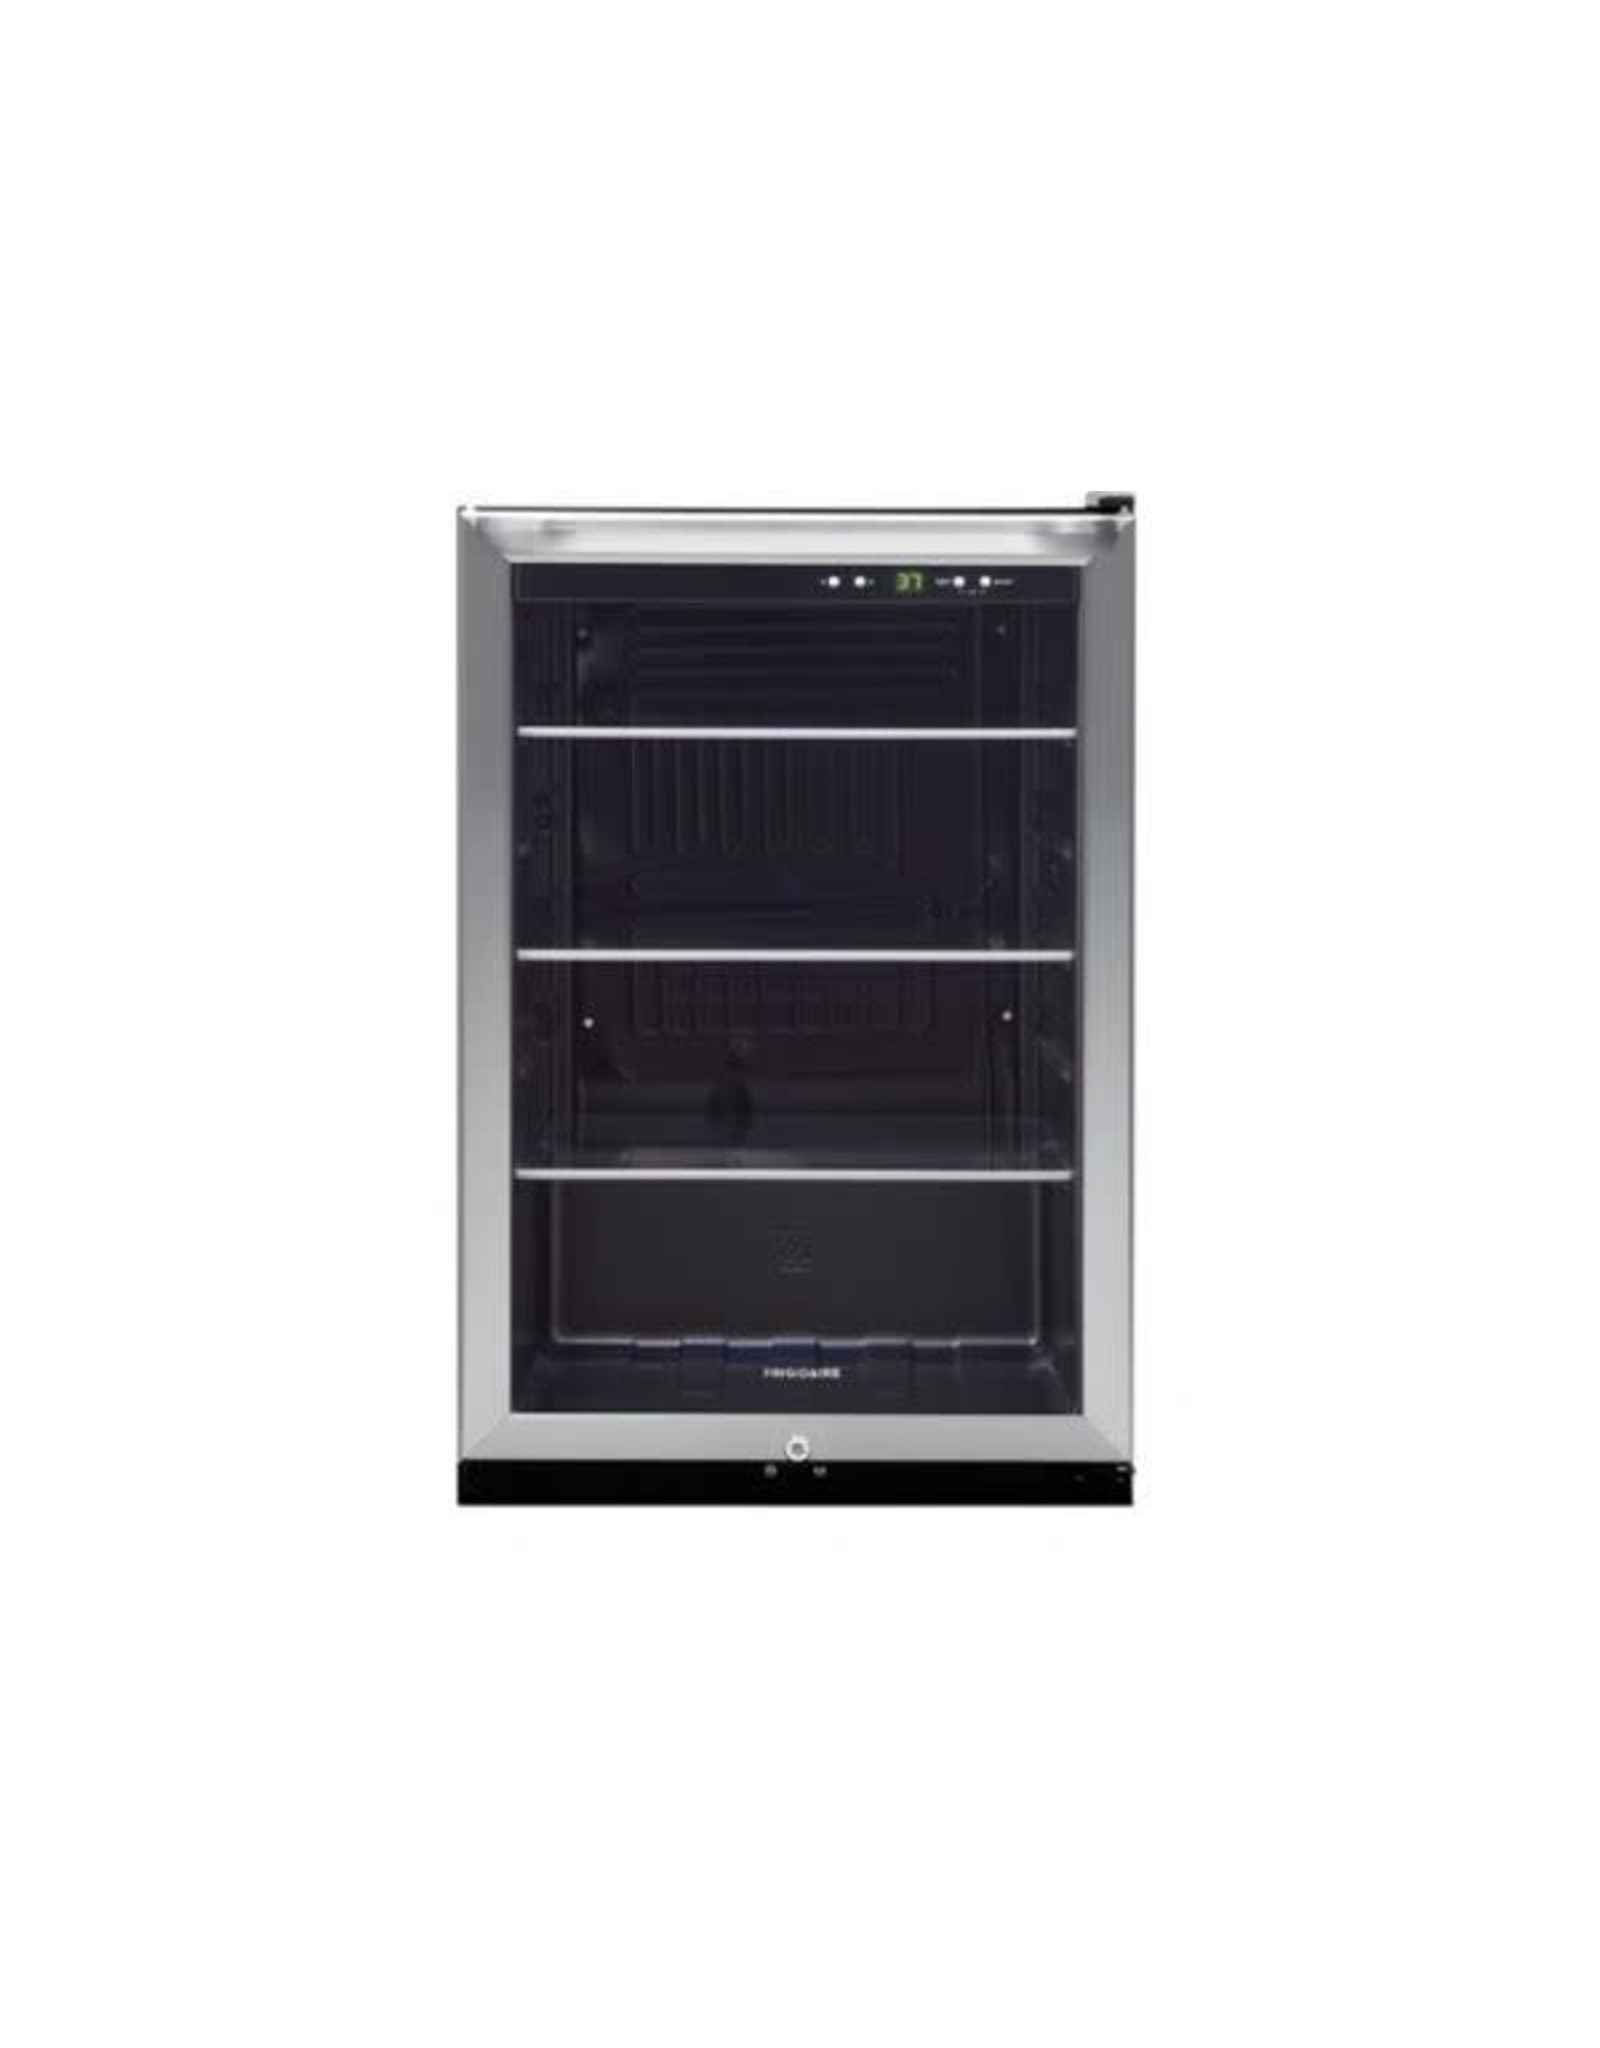 FRIGIDAIRE FFBC4622QS  Frigidaire 138 12 oz. Can Capacity Beverage Center with Ready-Select Control and Bright Lighting